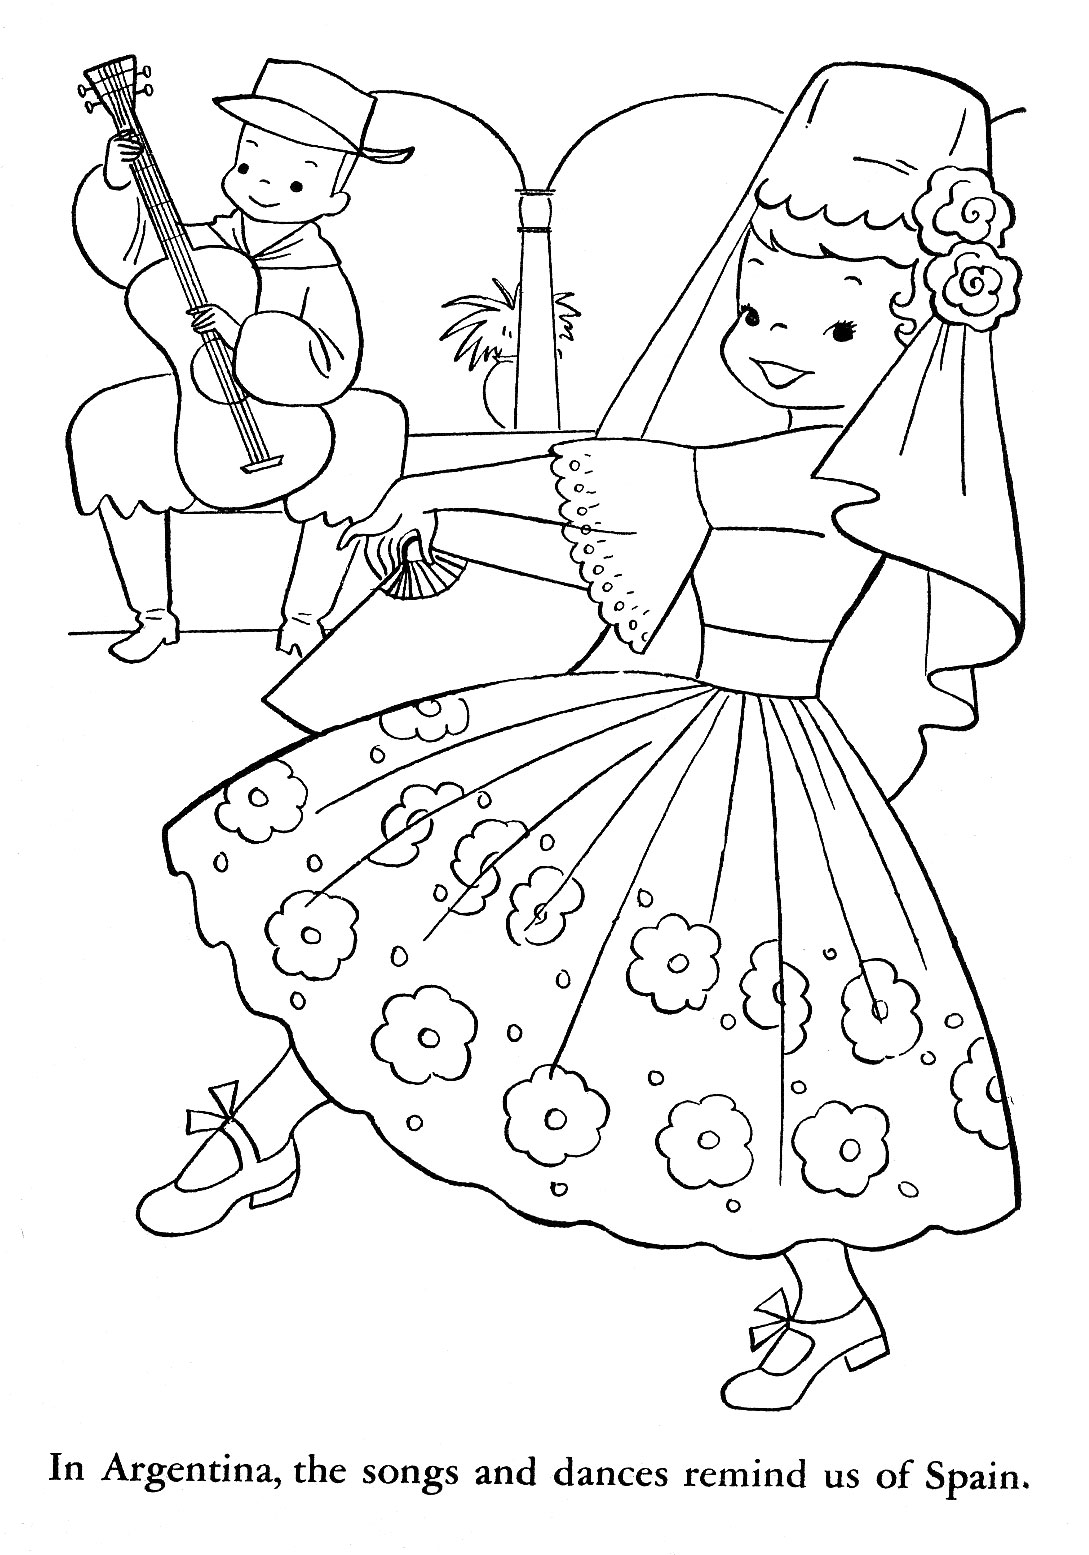 Argentina Coloring Pages Coloring Pages Argentina Coloring Pages